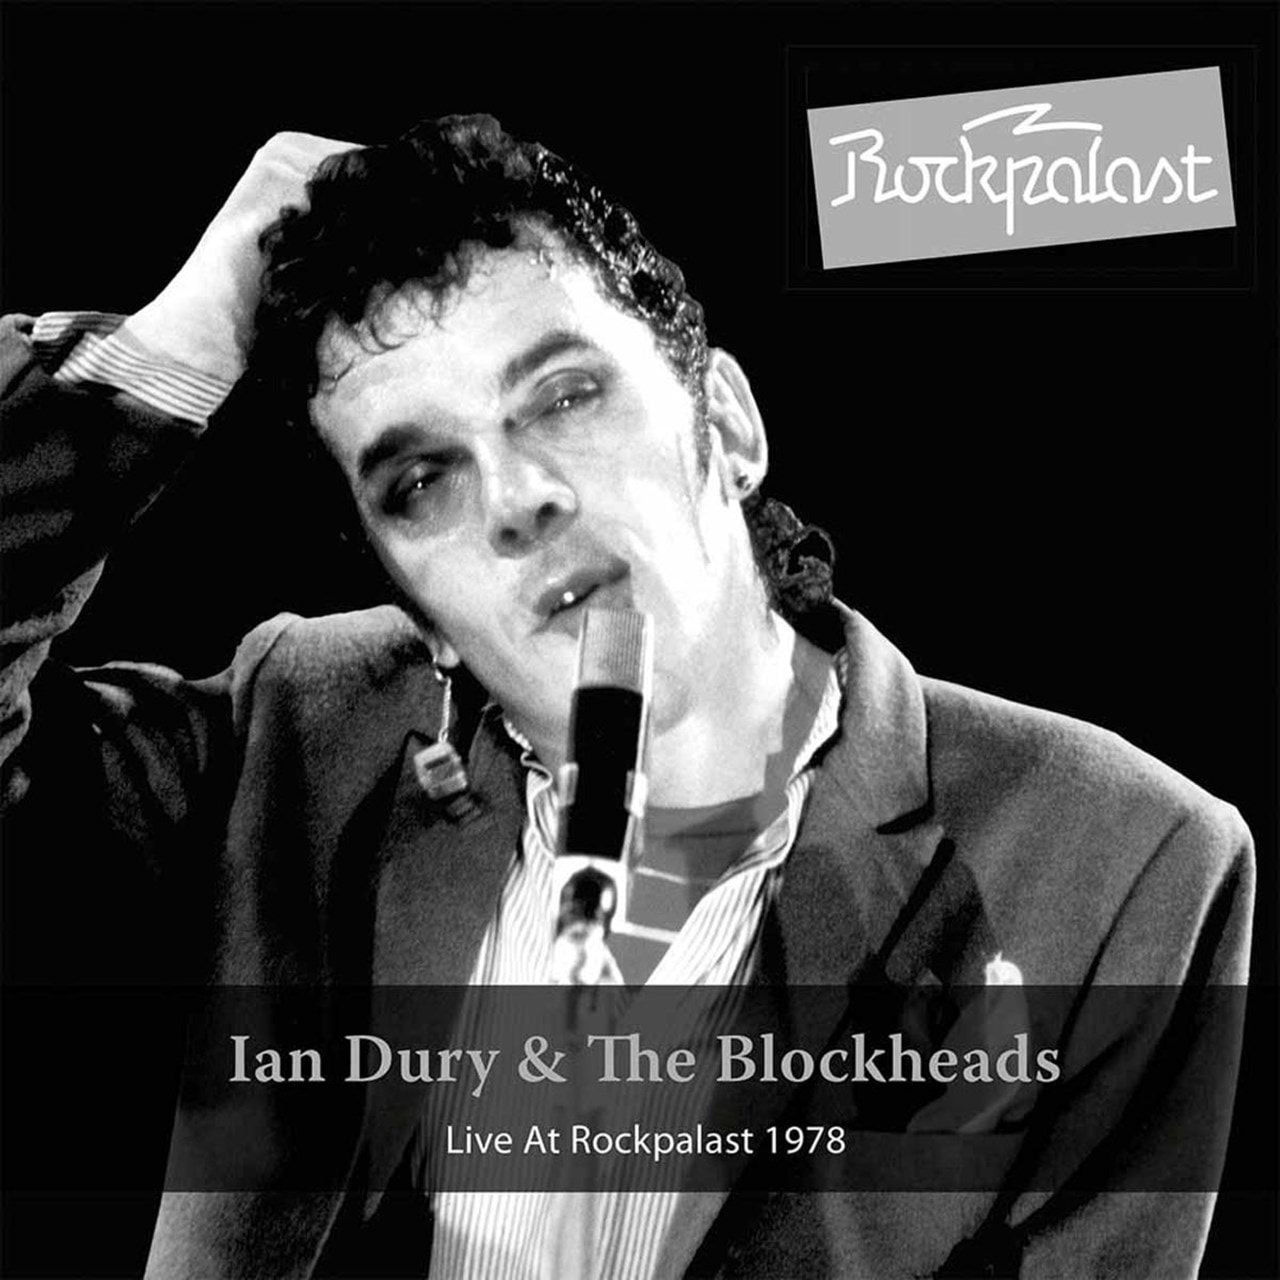 Live at Rockpalast 1978 - 1